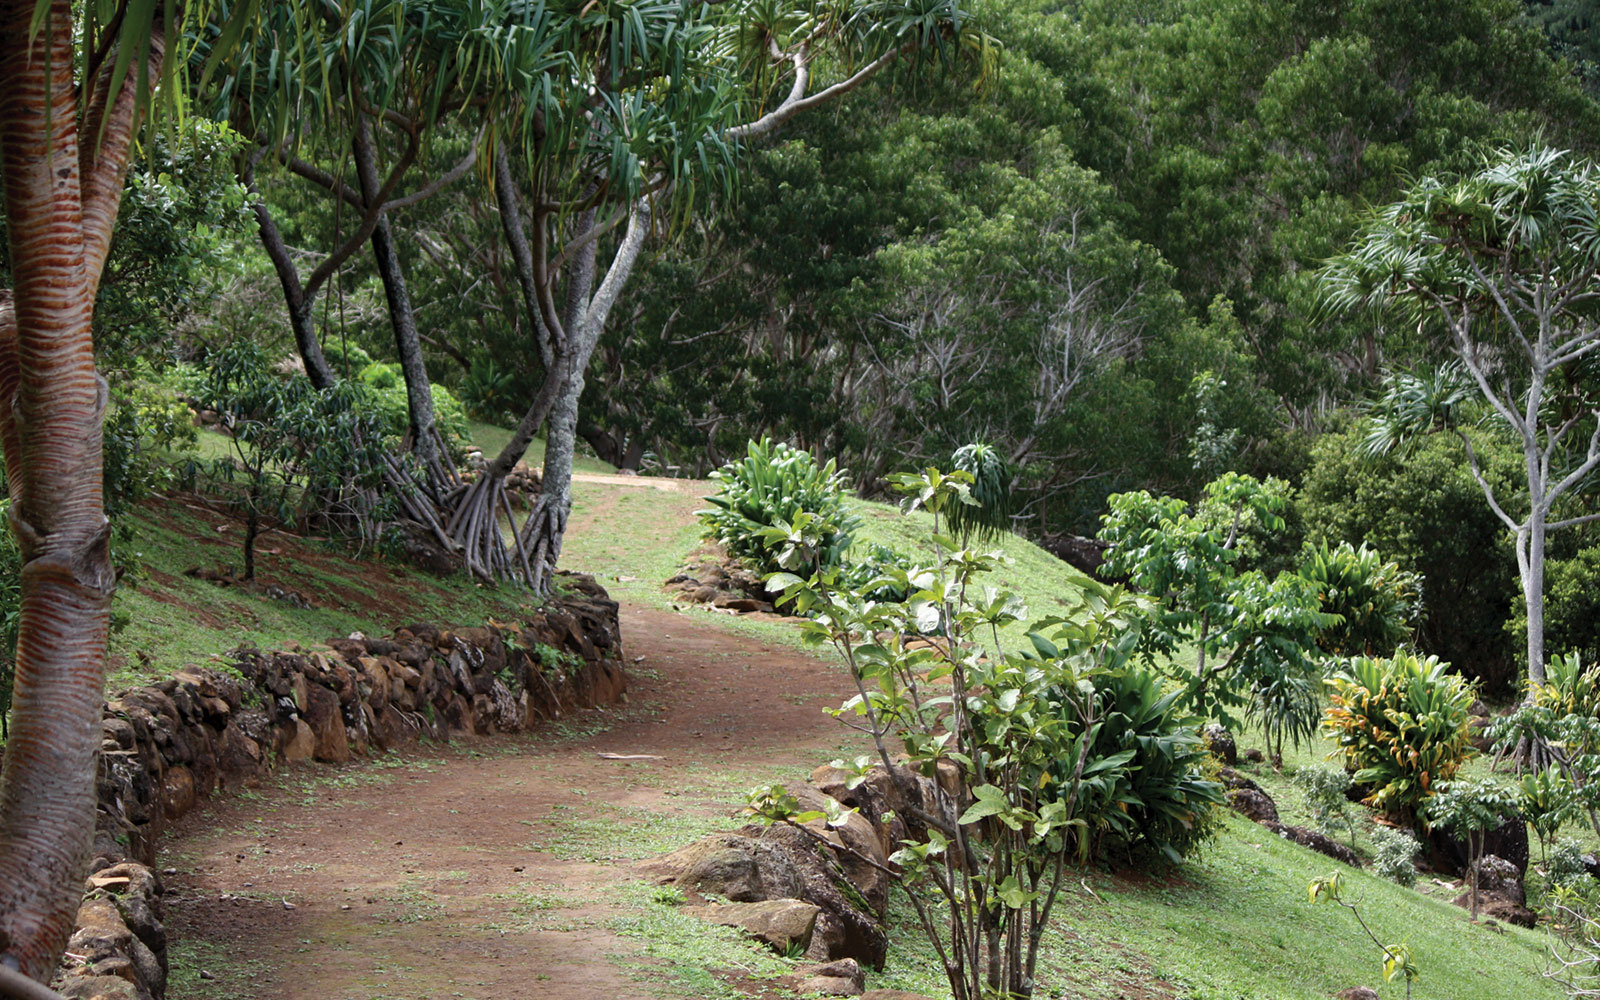 America's Most Beautiful Gardens: Limahuli Garden and Preserve